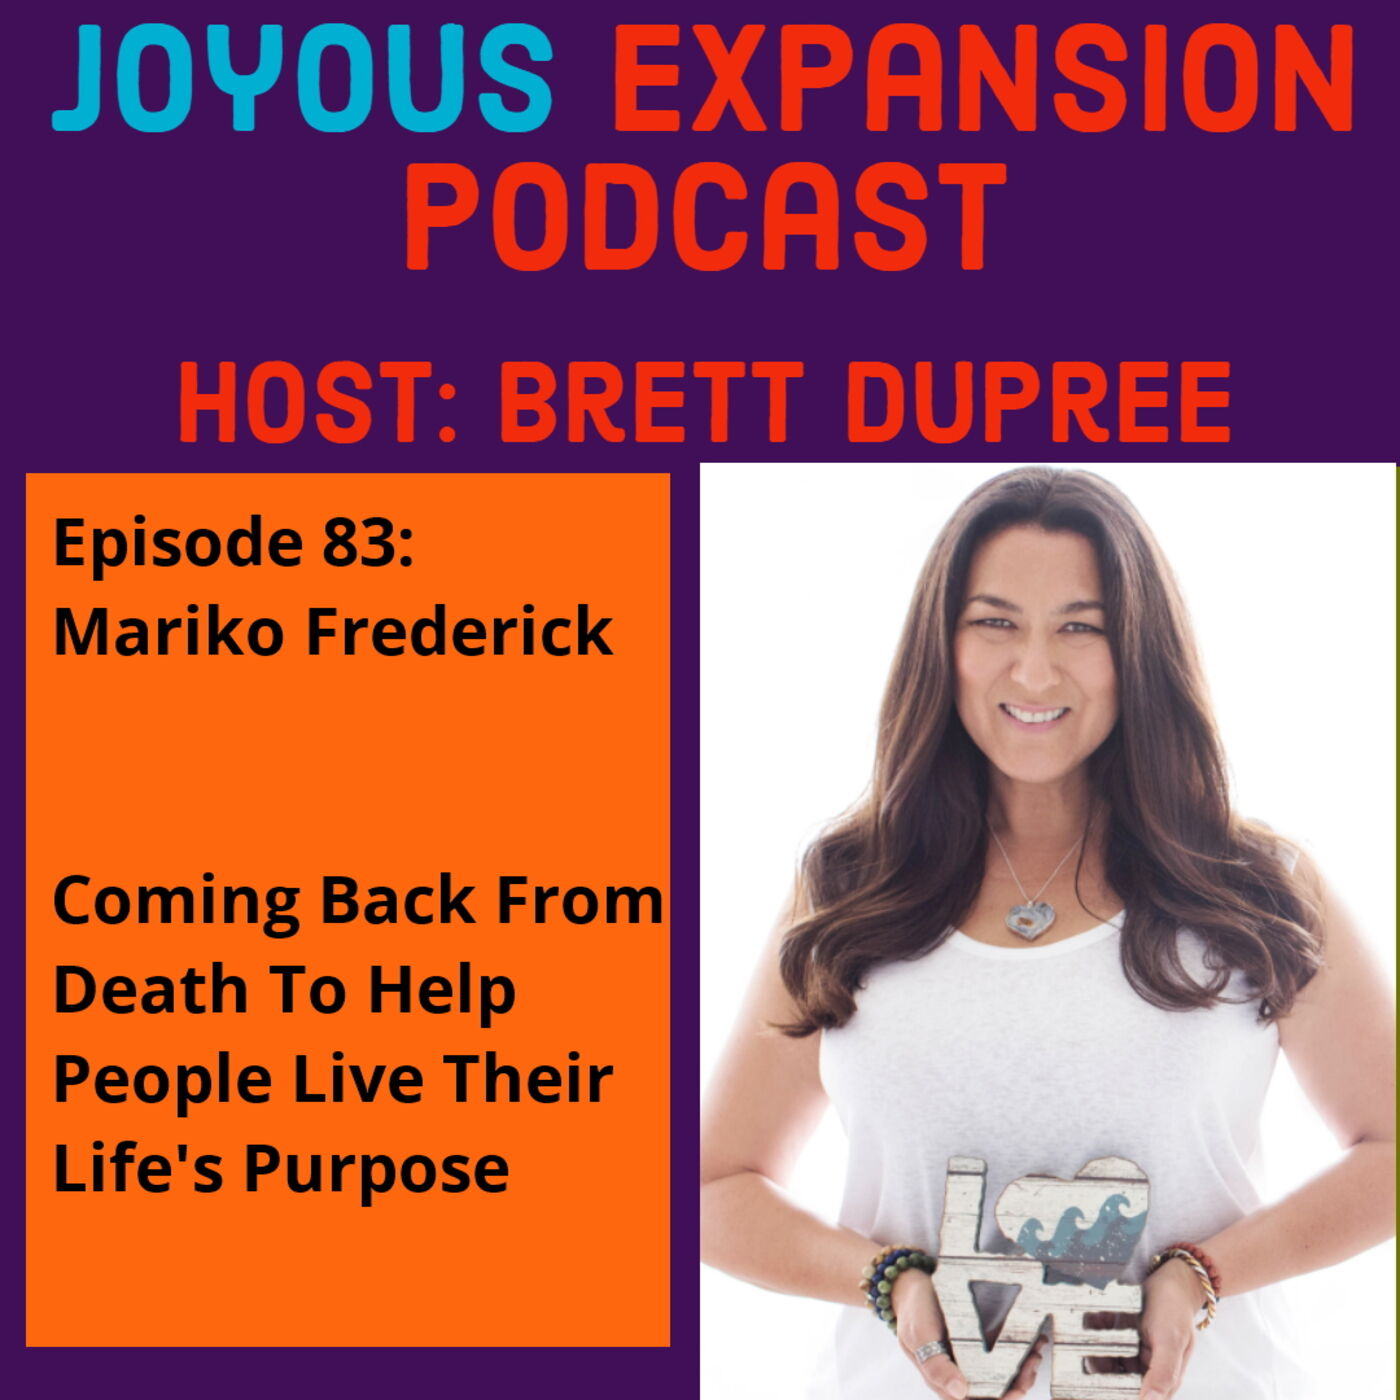 Joyous Expansion #83 - Mariko Frederick - Coming Back From Death To Help People Live Their Life's Purpose